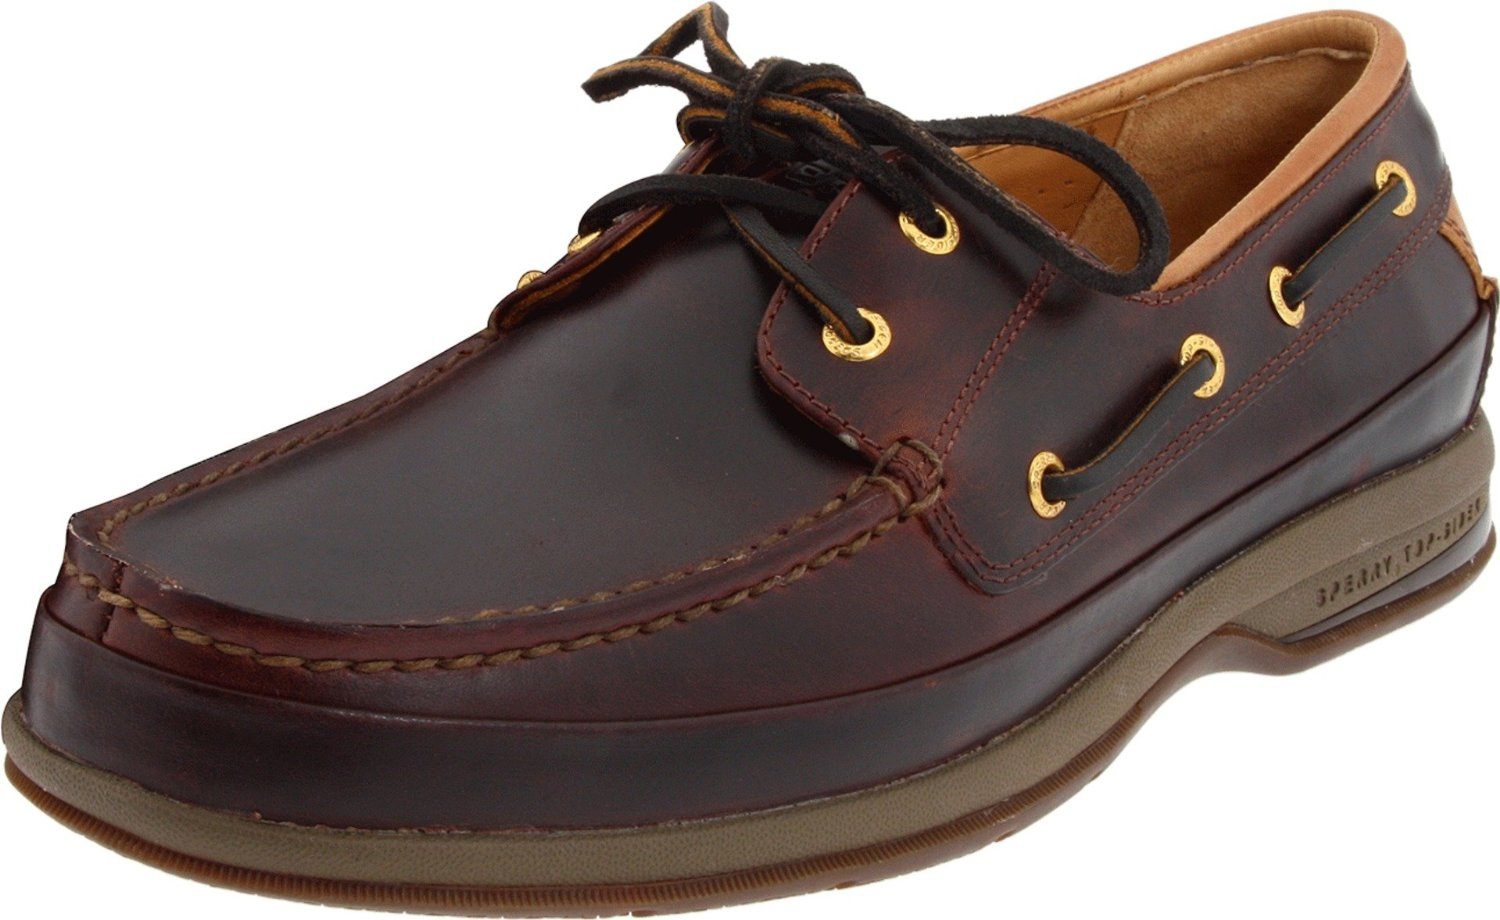 Brown Polo Boat Shoes